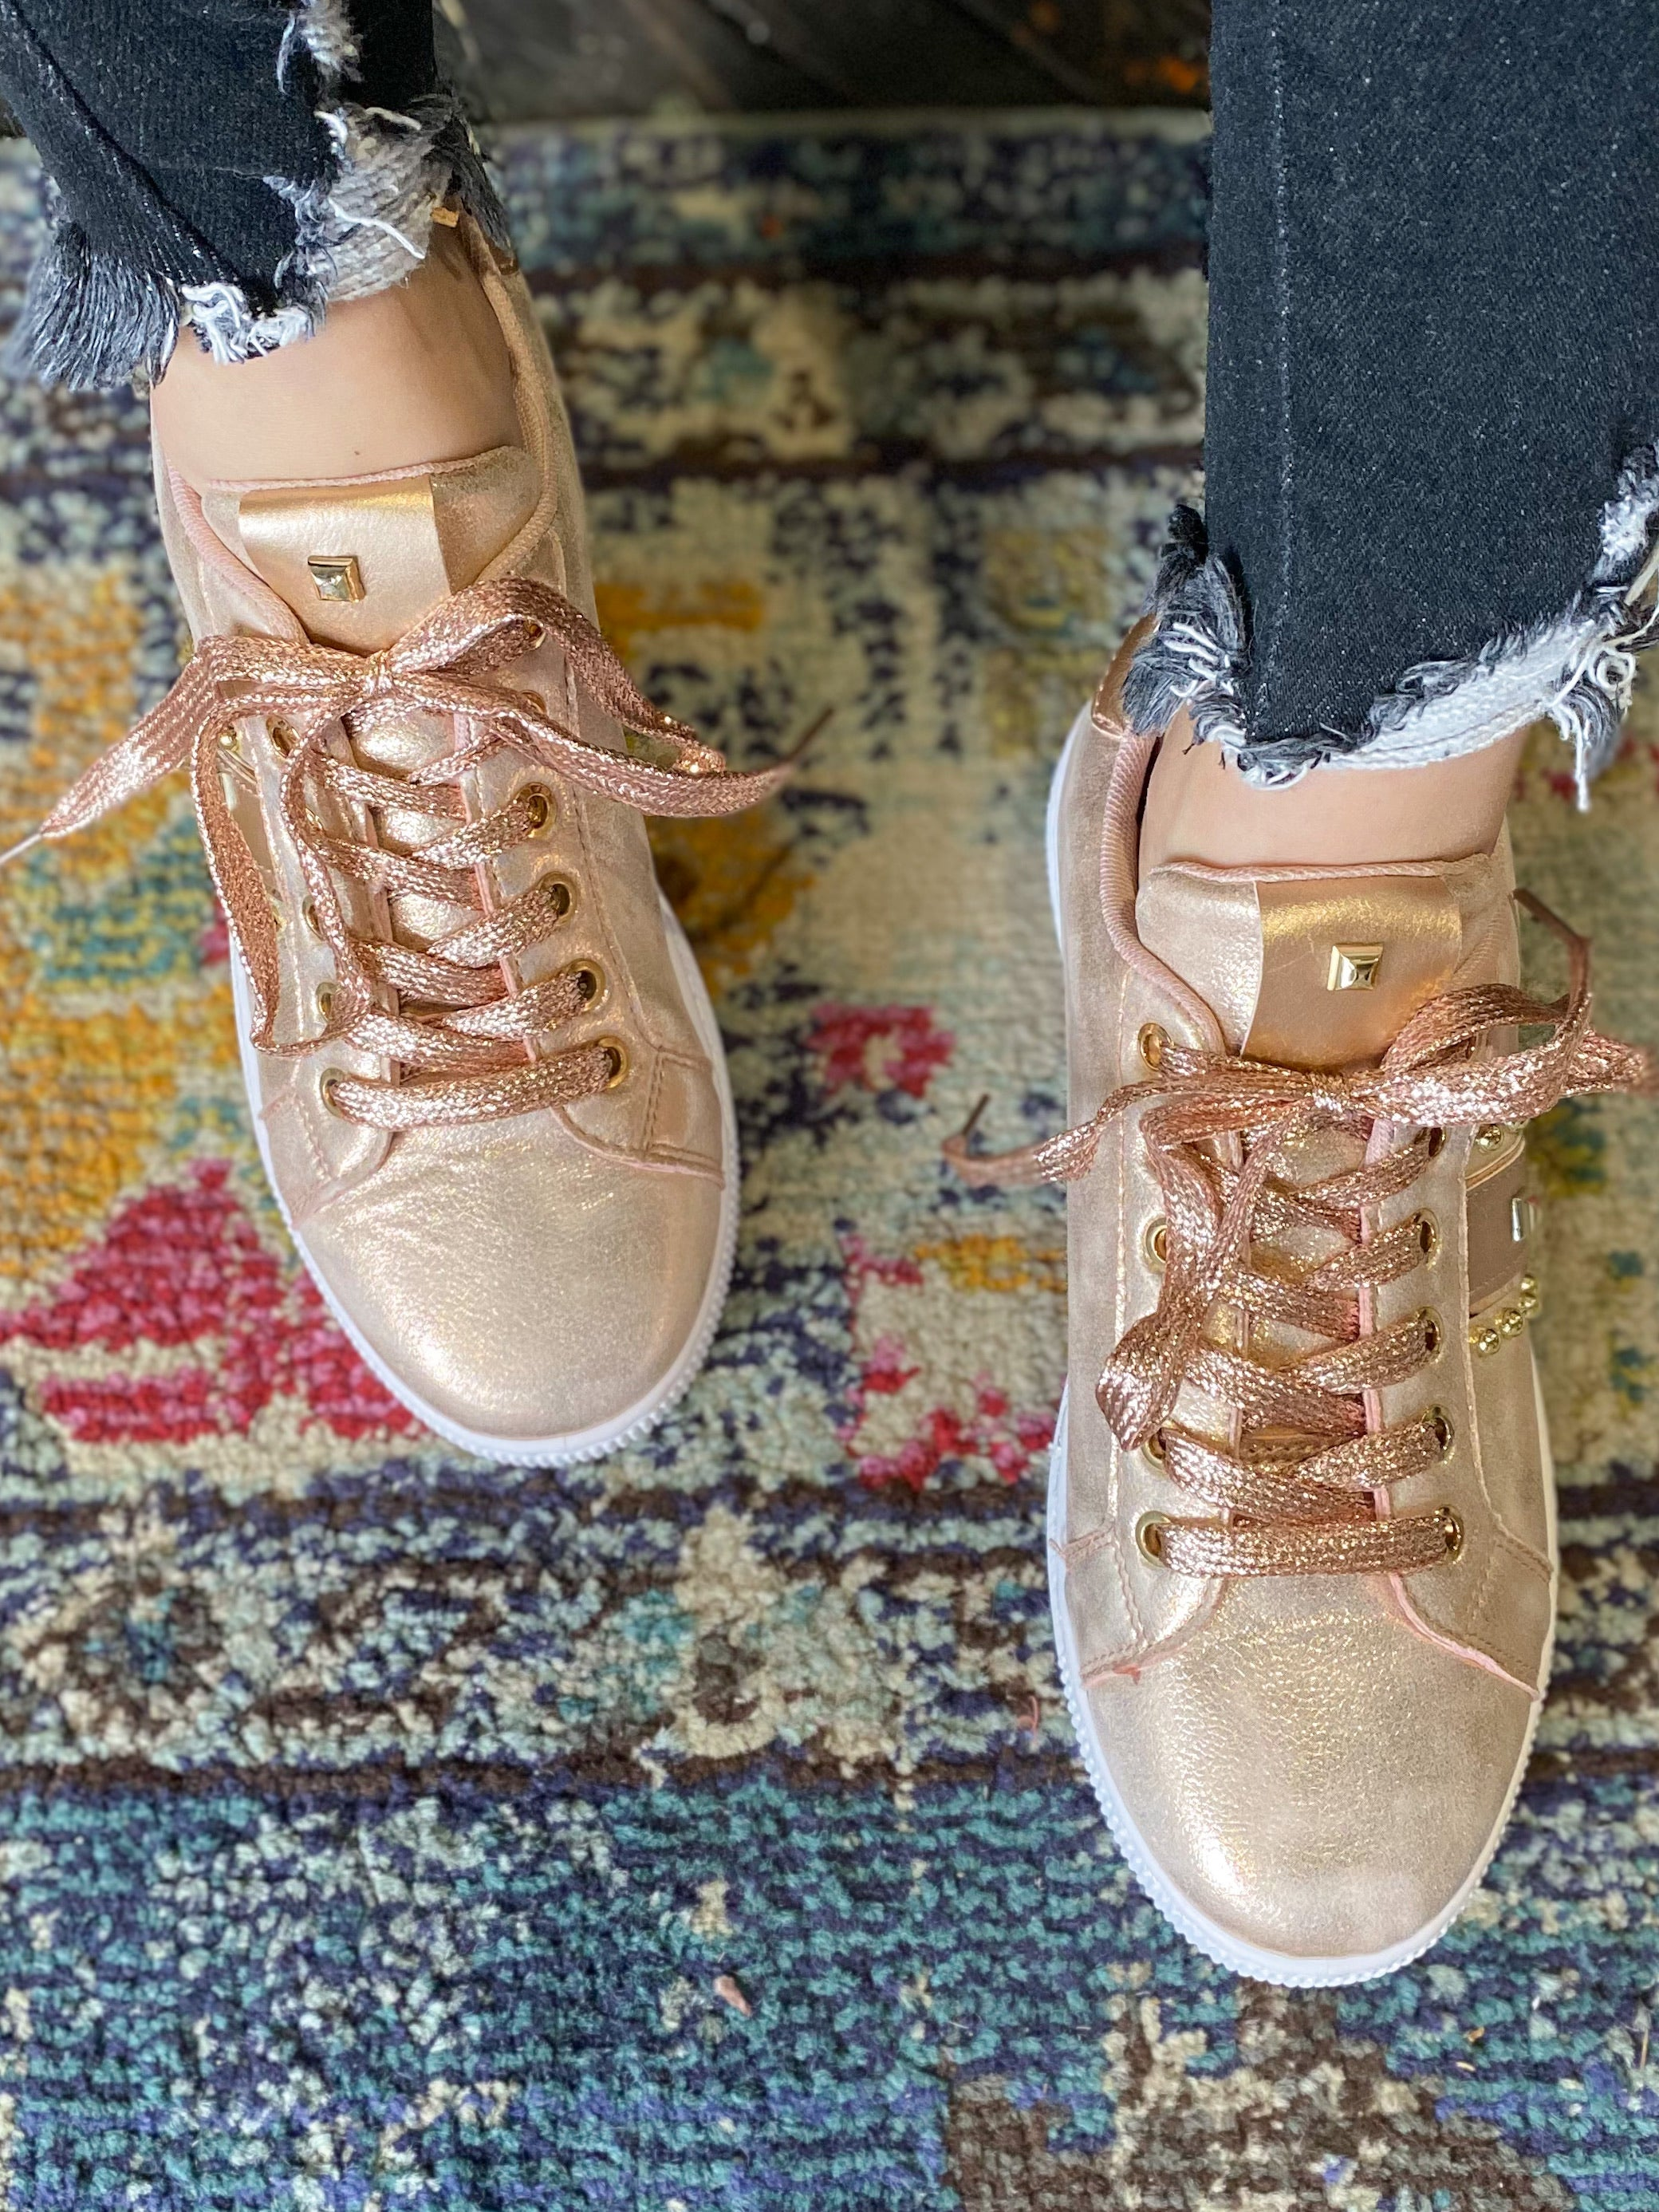 *FINAL SALE* The Rose Gold Star Studded Sneakers